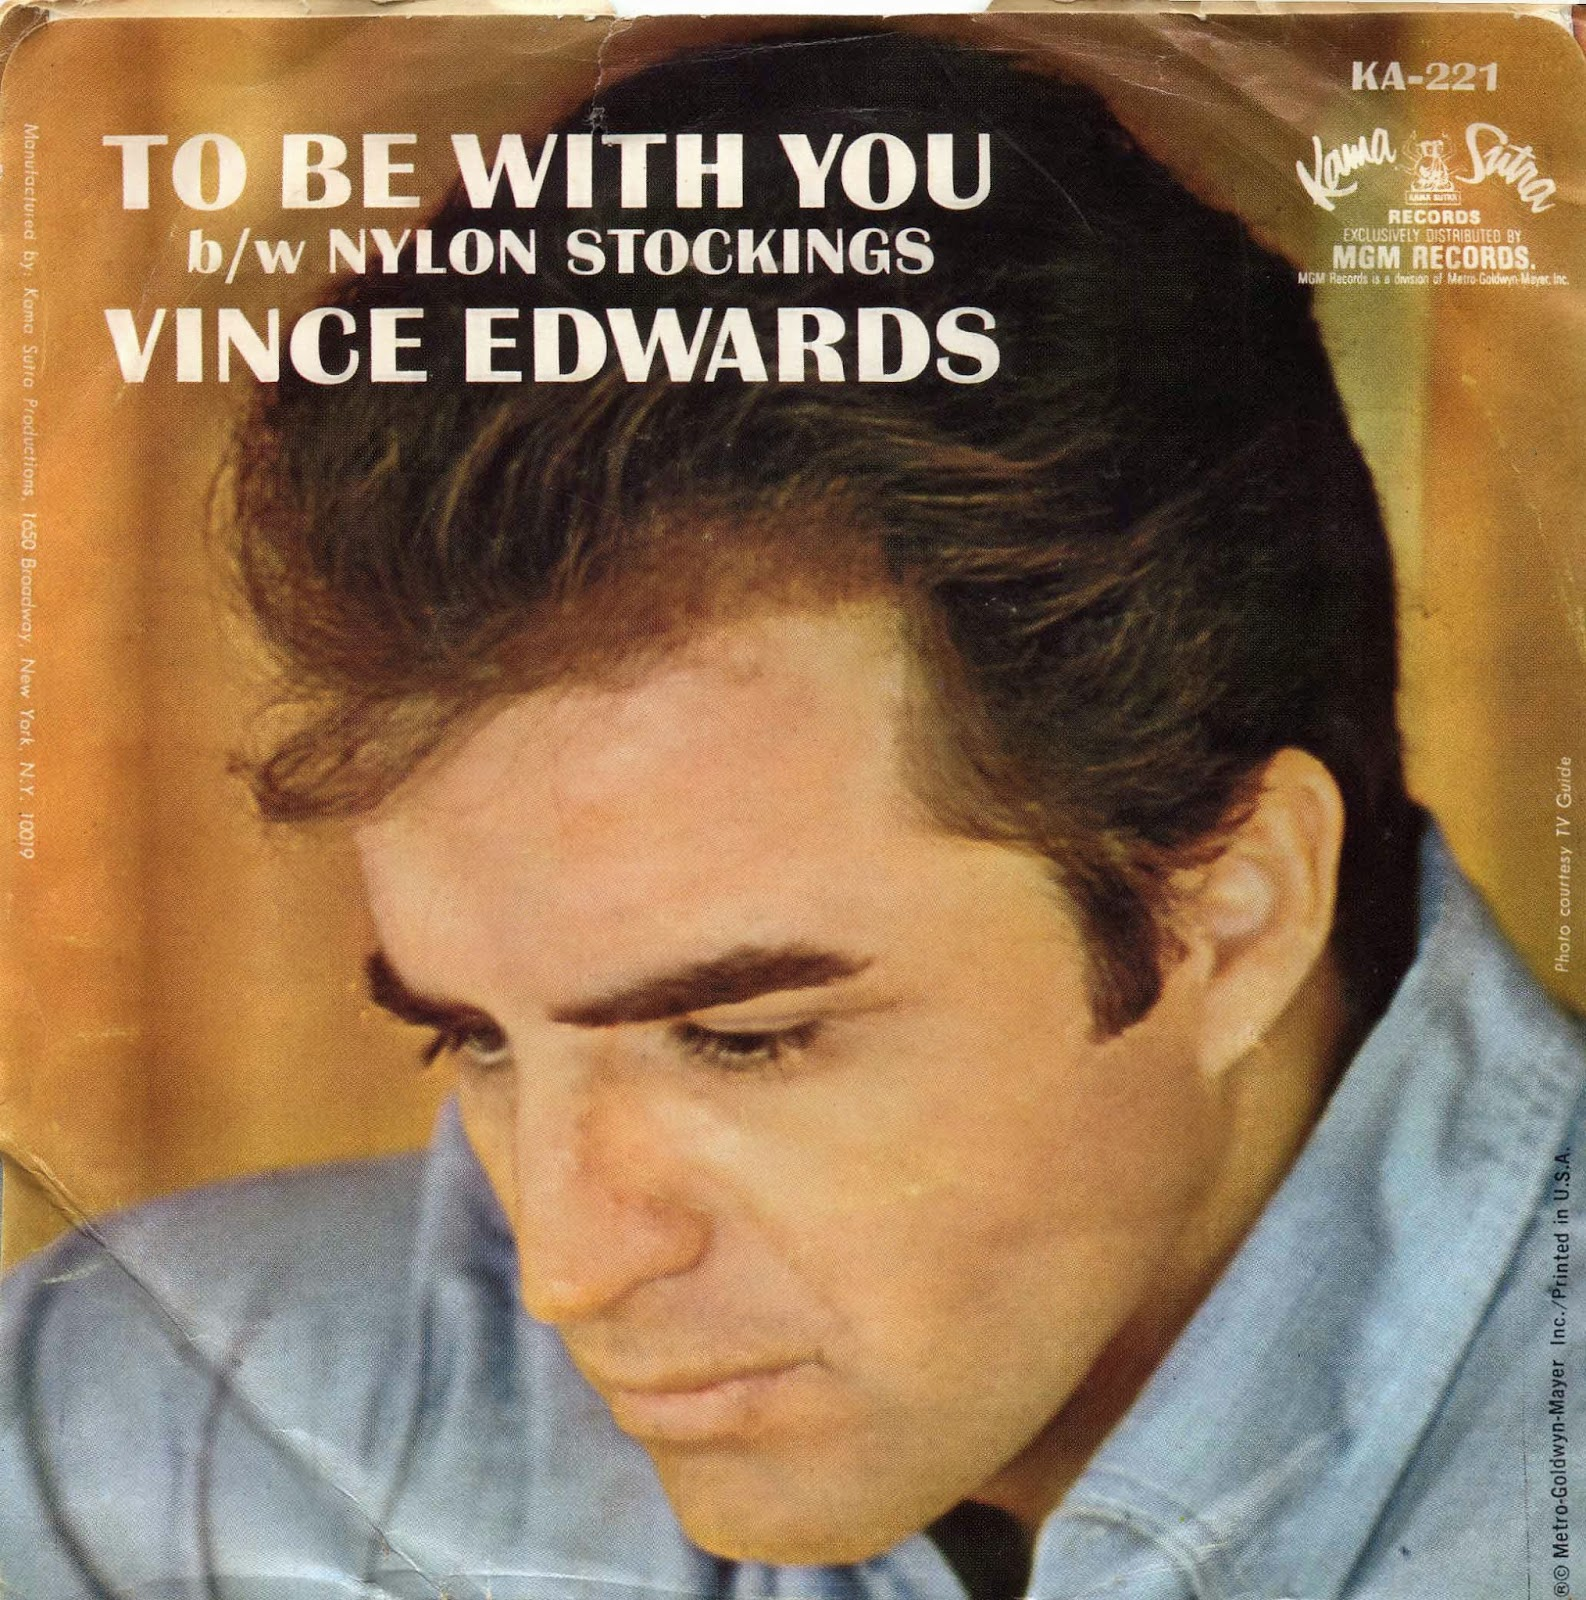 d r e w  u2022 f r i e d m a n  my vince edwards record collection